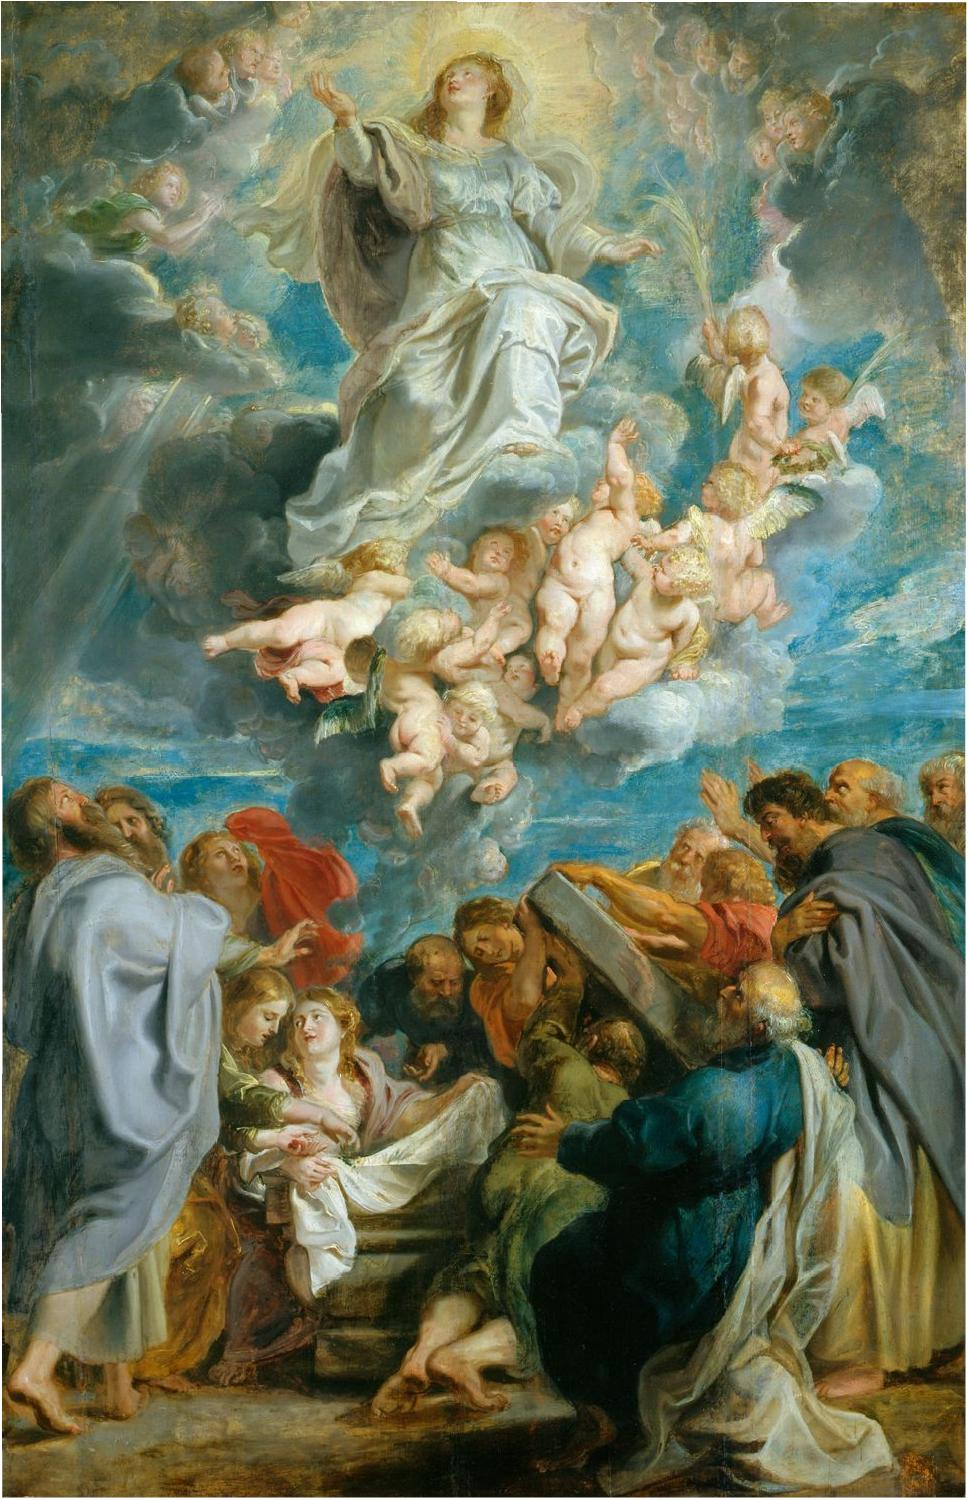 http://3.bp.blogspot.com/-t0ktXIFK050/UgvDmuZv3wI/AAAAAAAAESI/1SQWIKjt1EI/s1600/The_Assumption_of_the_Virgin_1612-17_Peter_Paul_Rubens.jpg